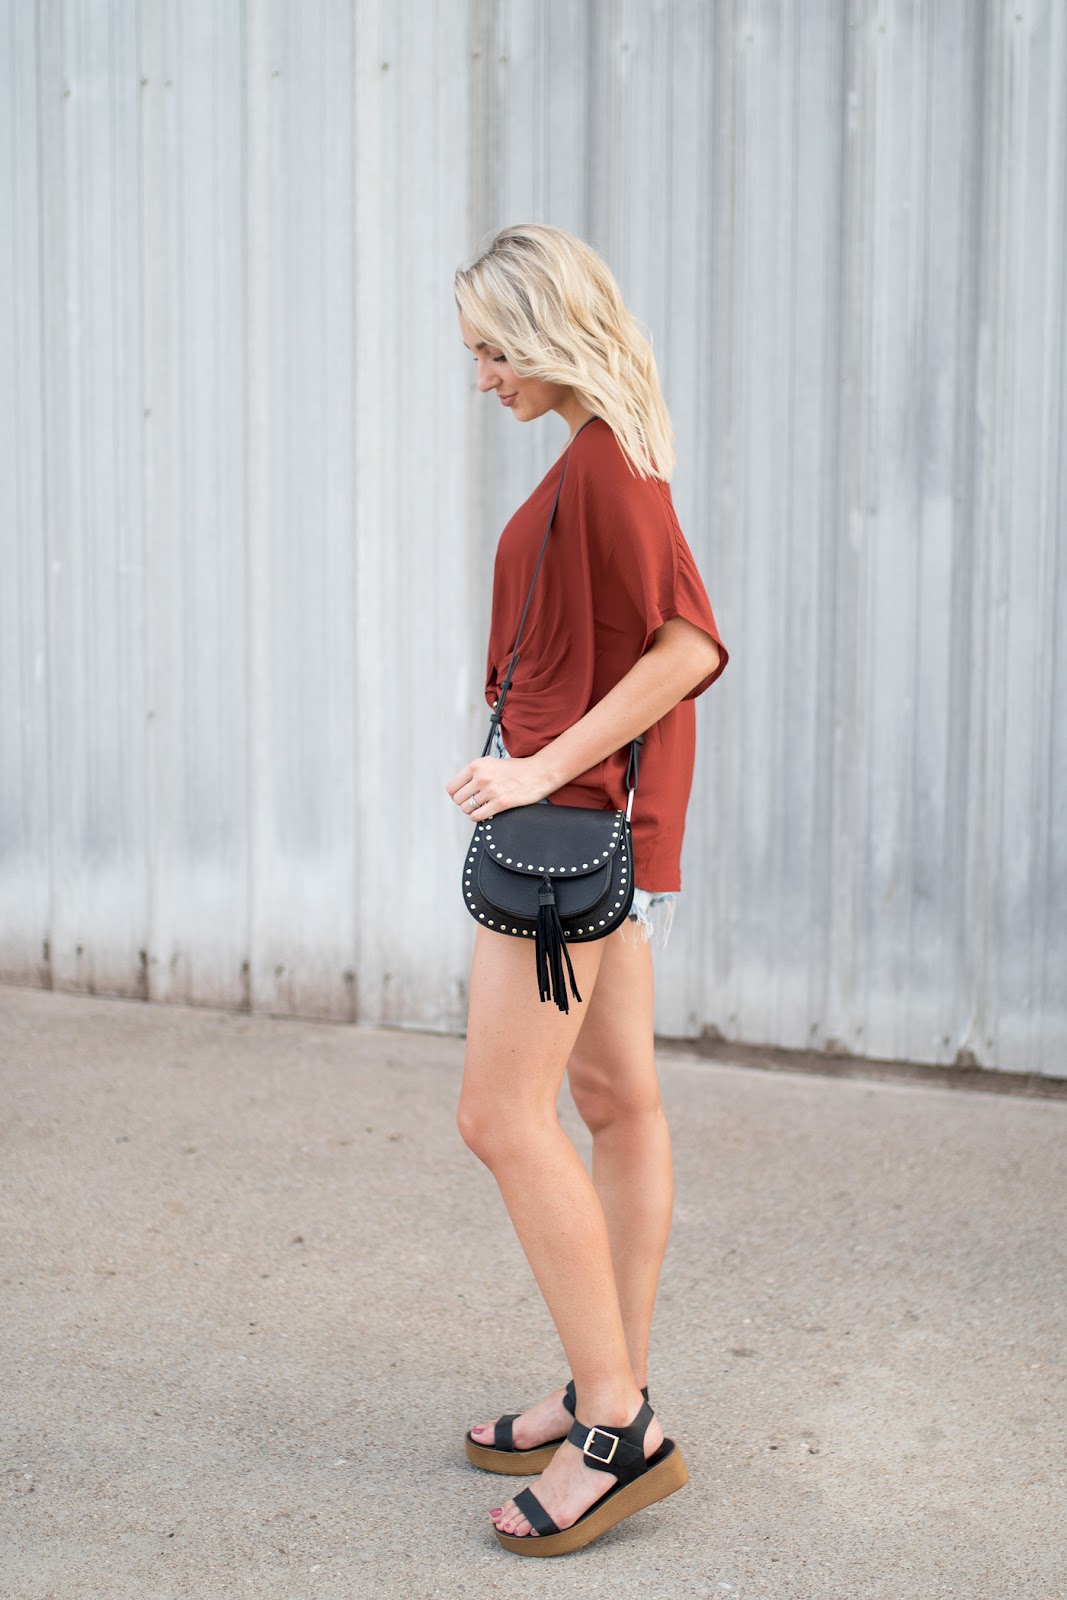 Draped blouse with cutoffs and platform sandals